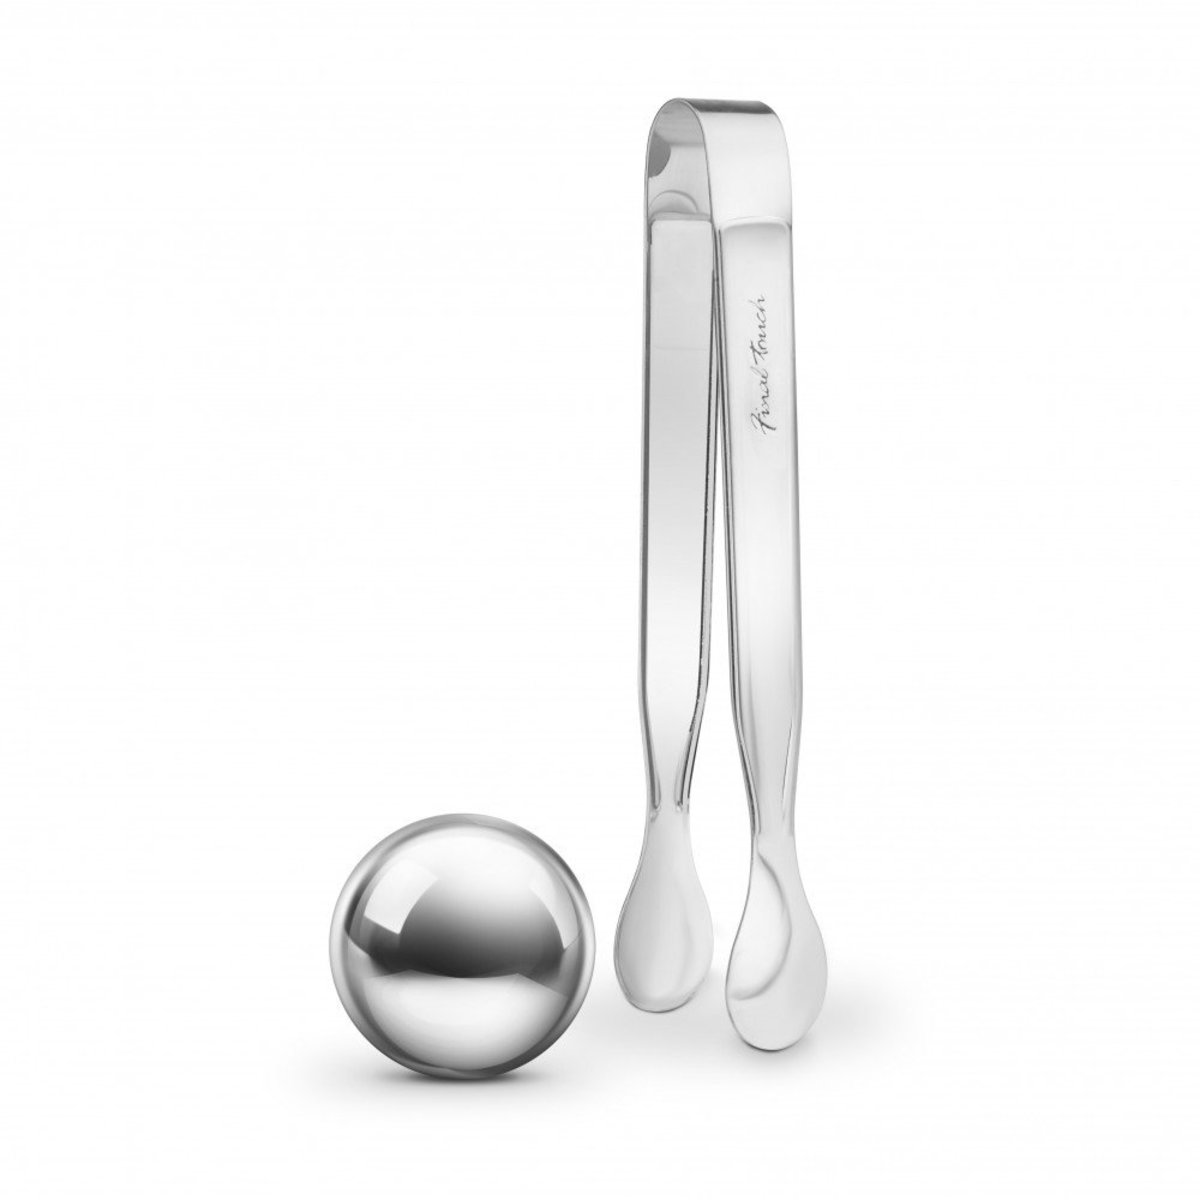 Stainless Steel Chilling Ball & Ice Tongs Set